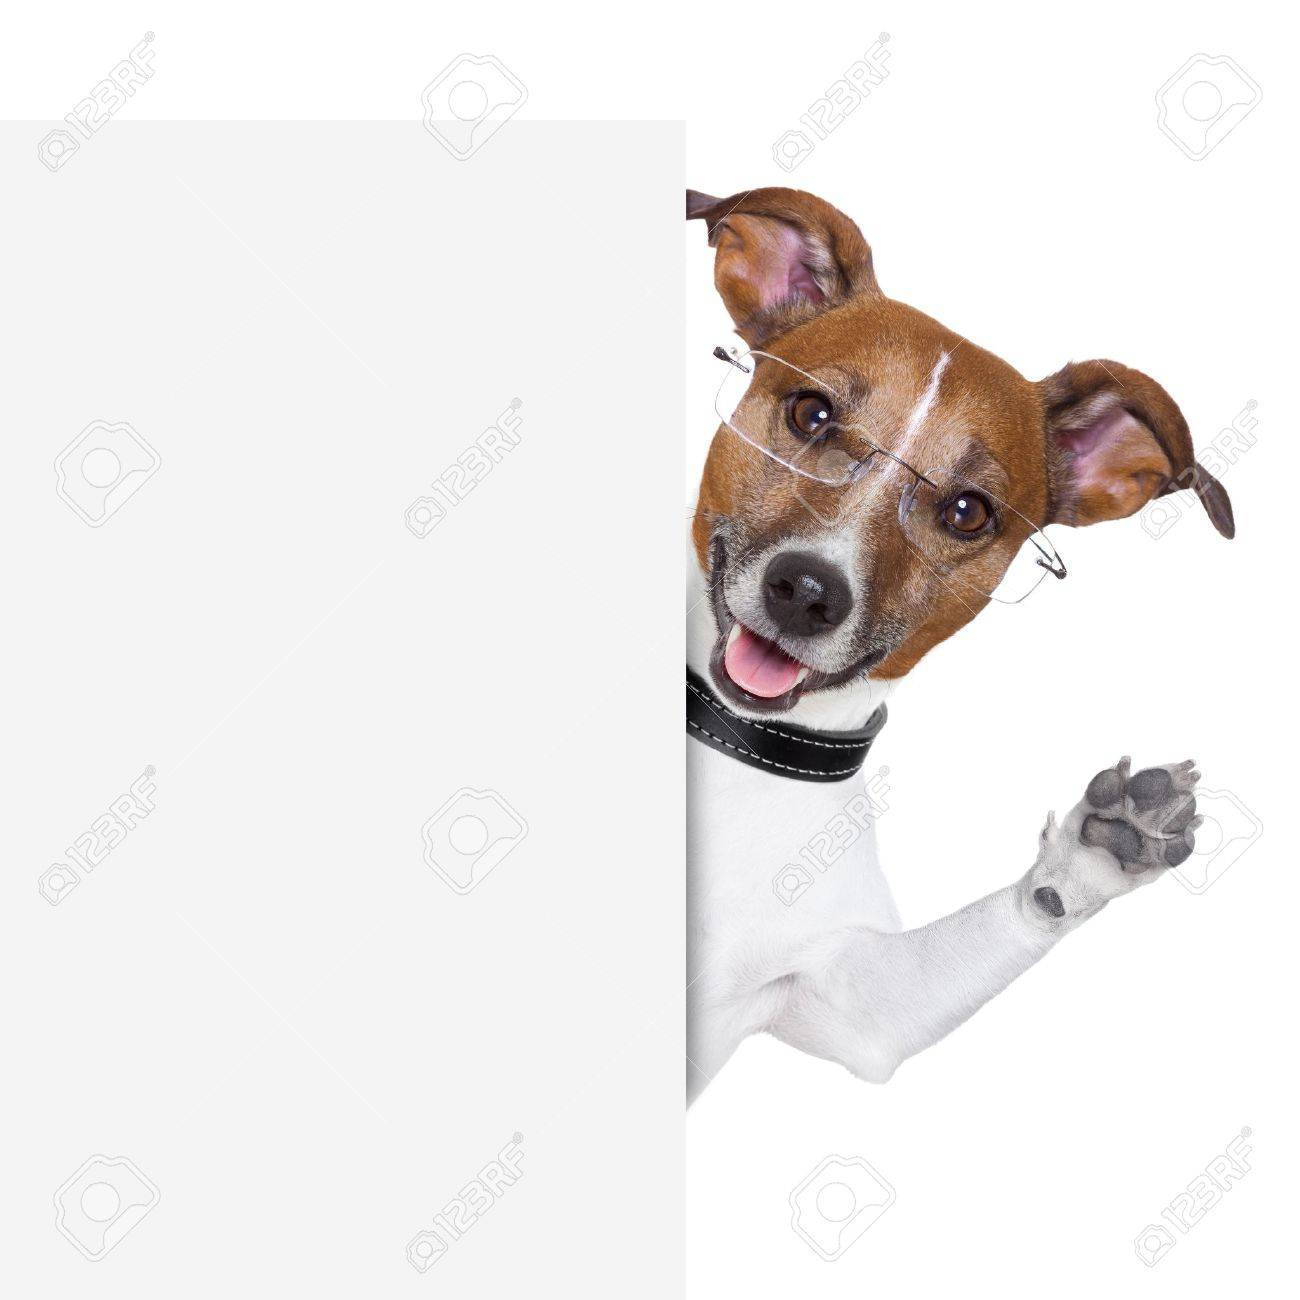 dog  with glasses behind a white banner waving Stock Photo - 18546052